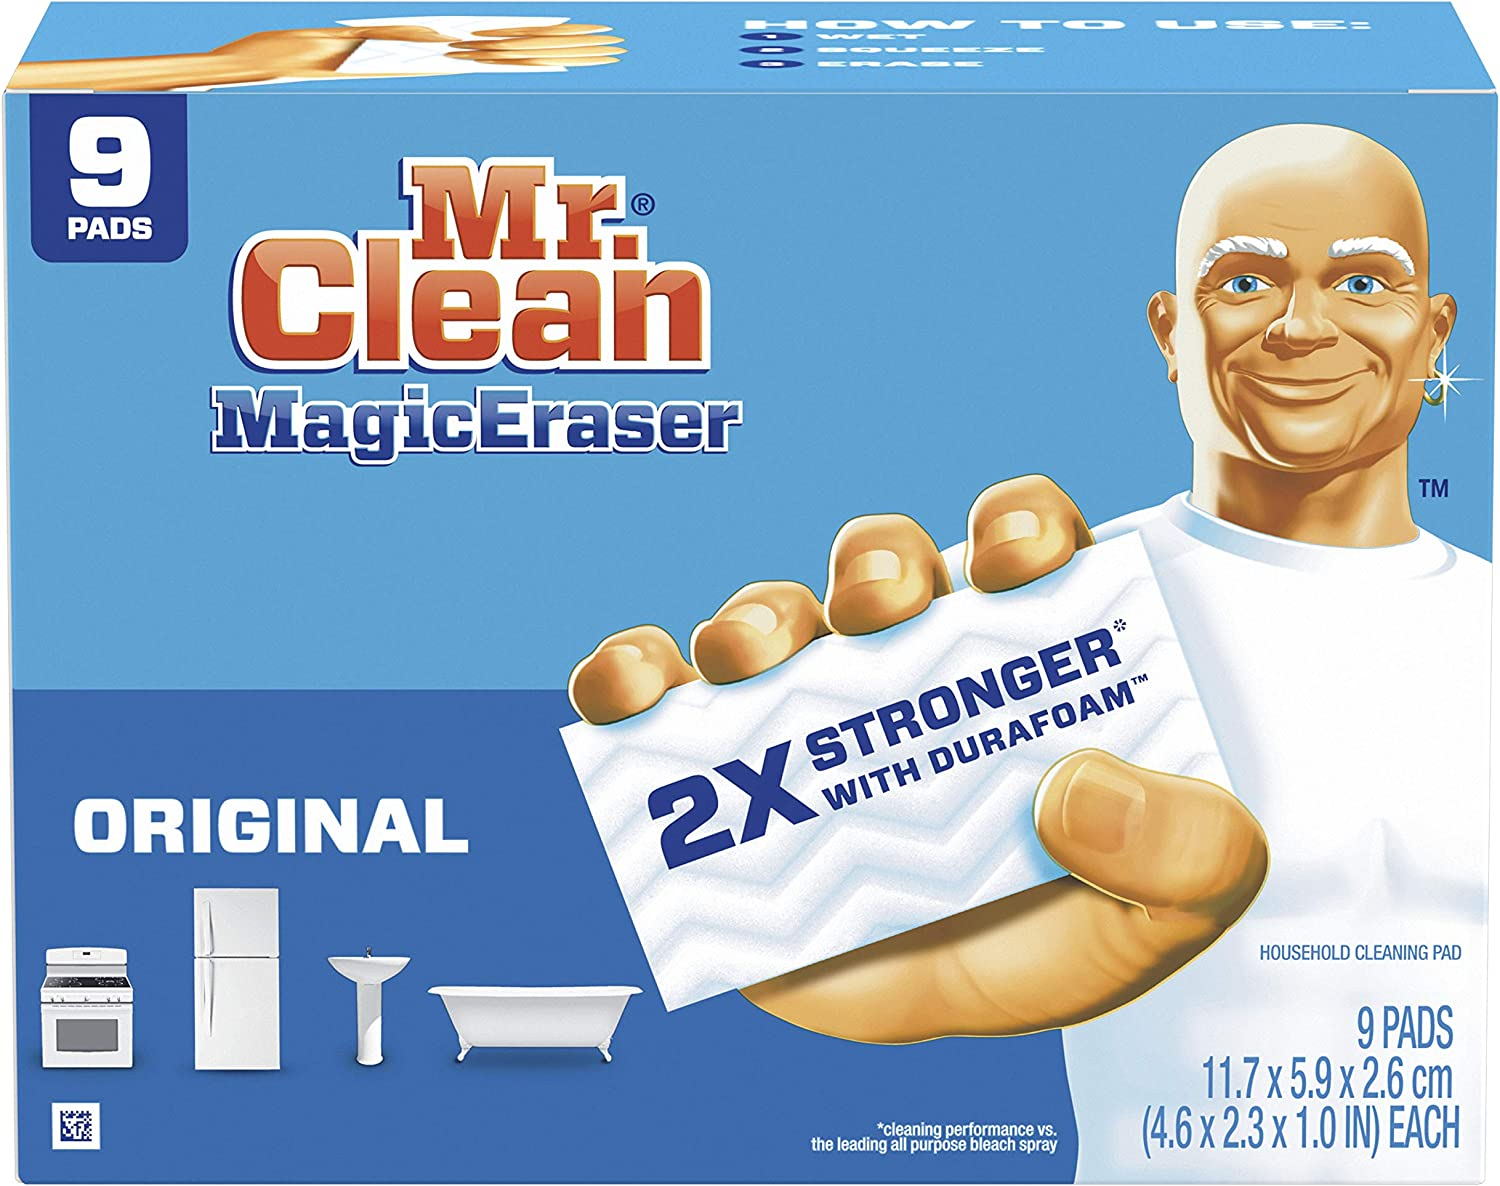 Mr. Clean Magic Eraser Original, Bathroom, Shower, and Oven Cleaner, Cleaning Pads with Durafoam, 9 Count : Health & Household